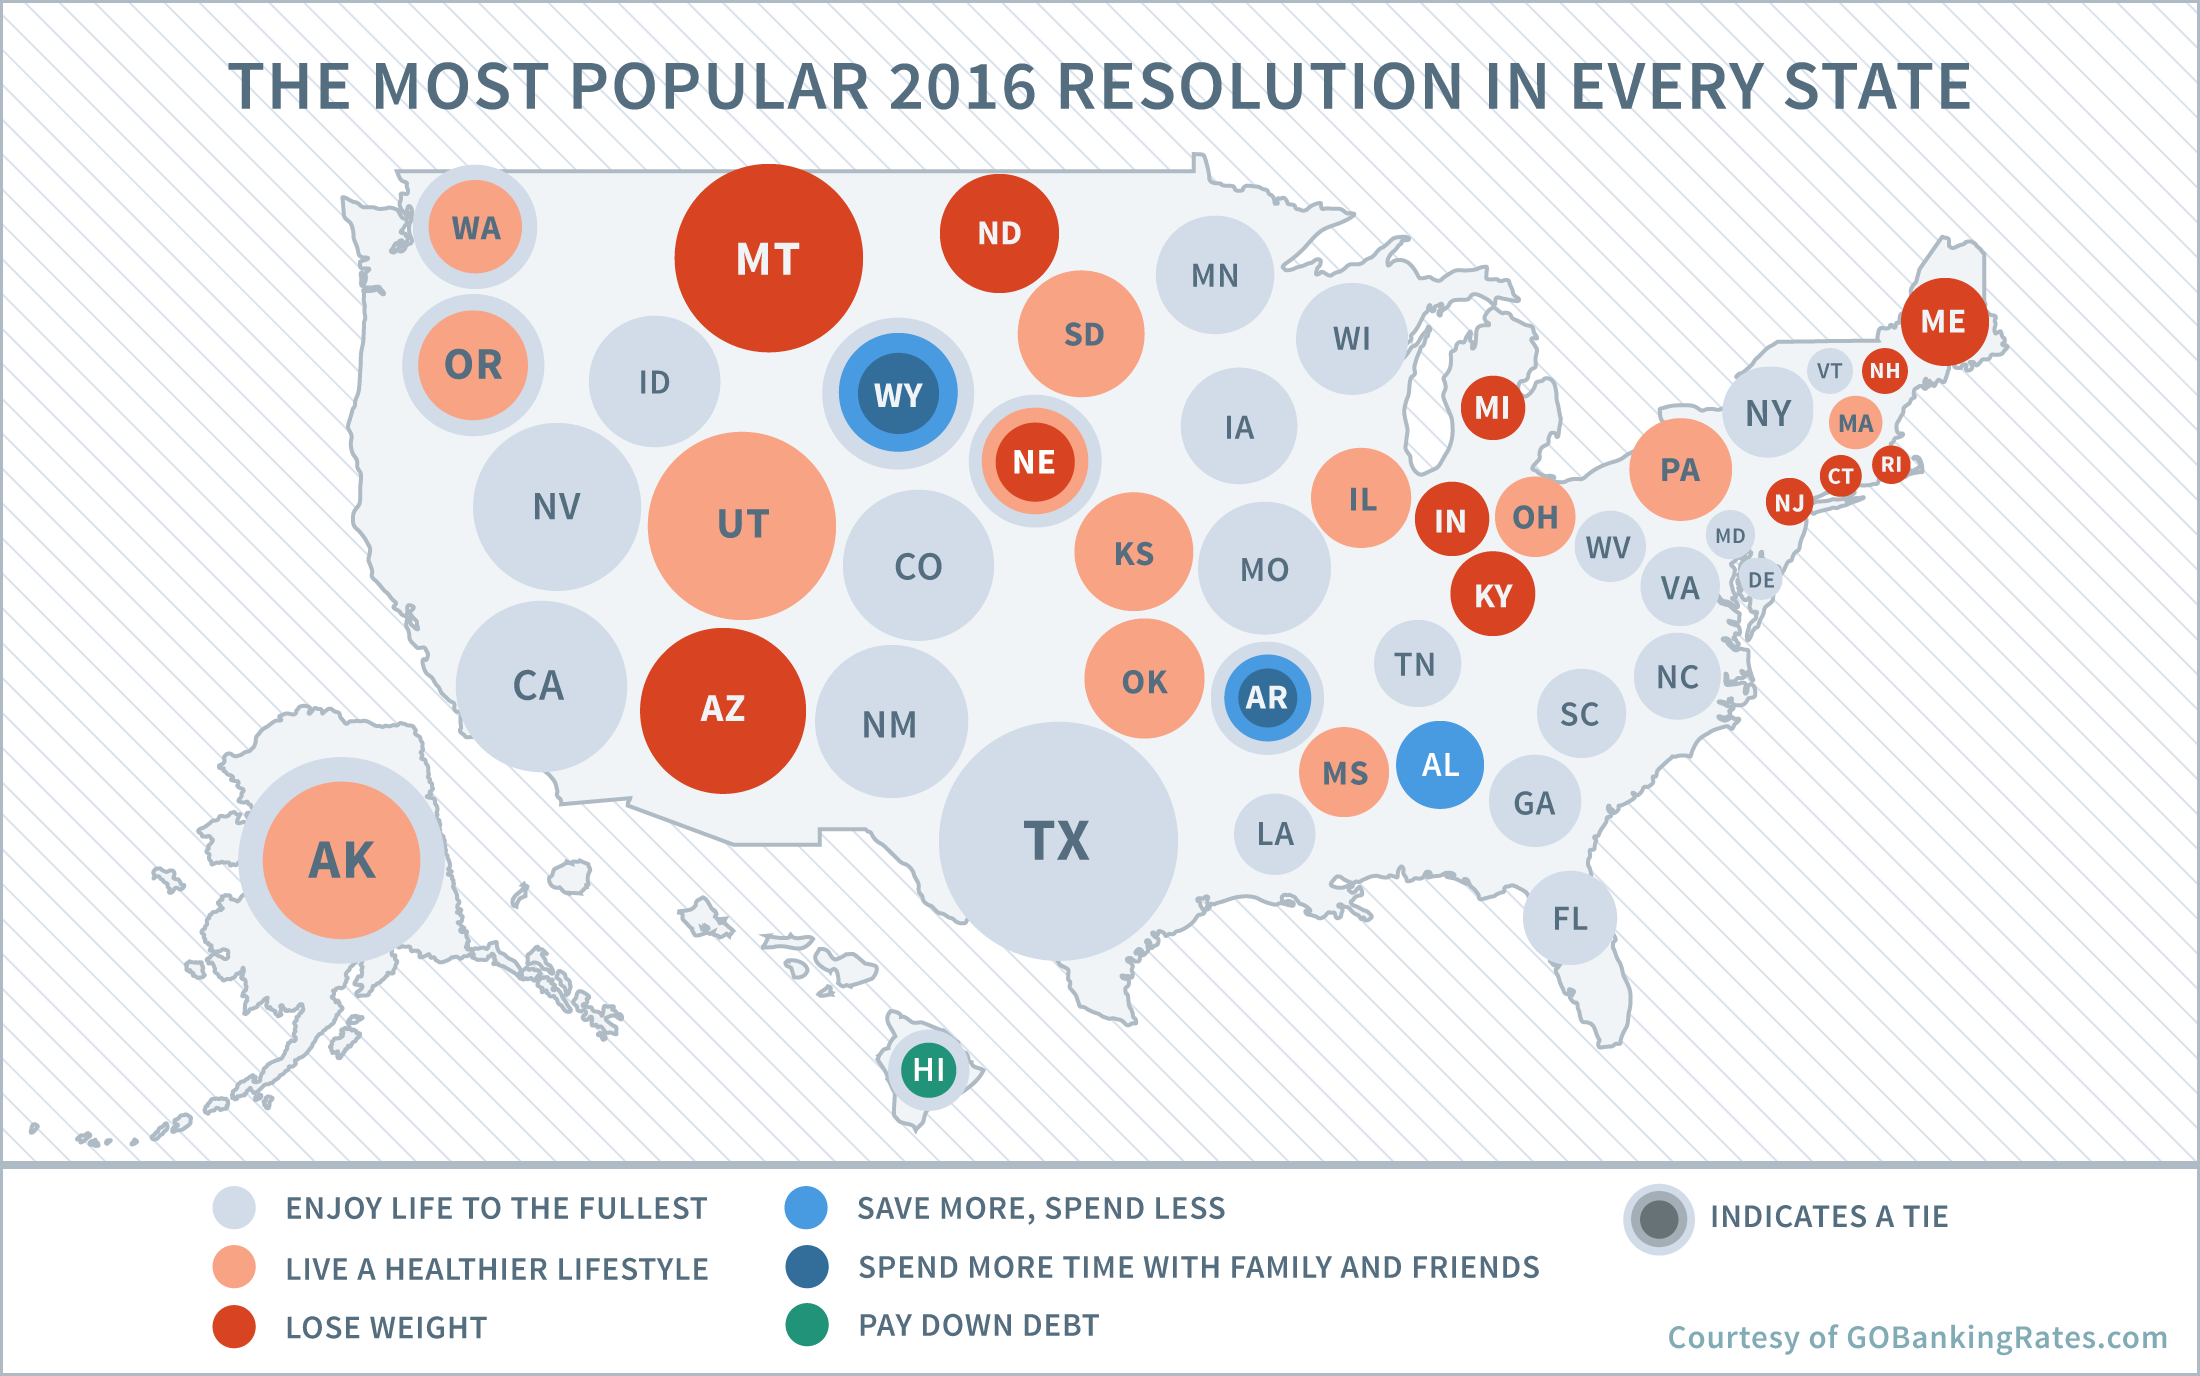 New Year's resolutions in each state